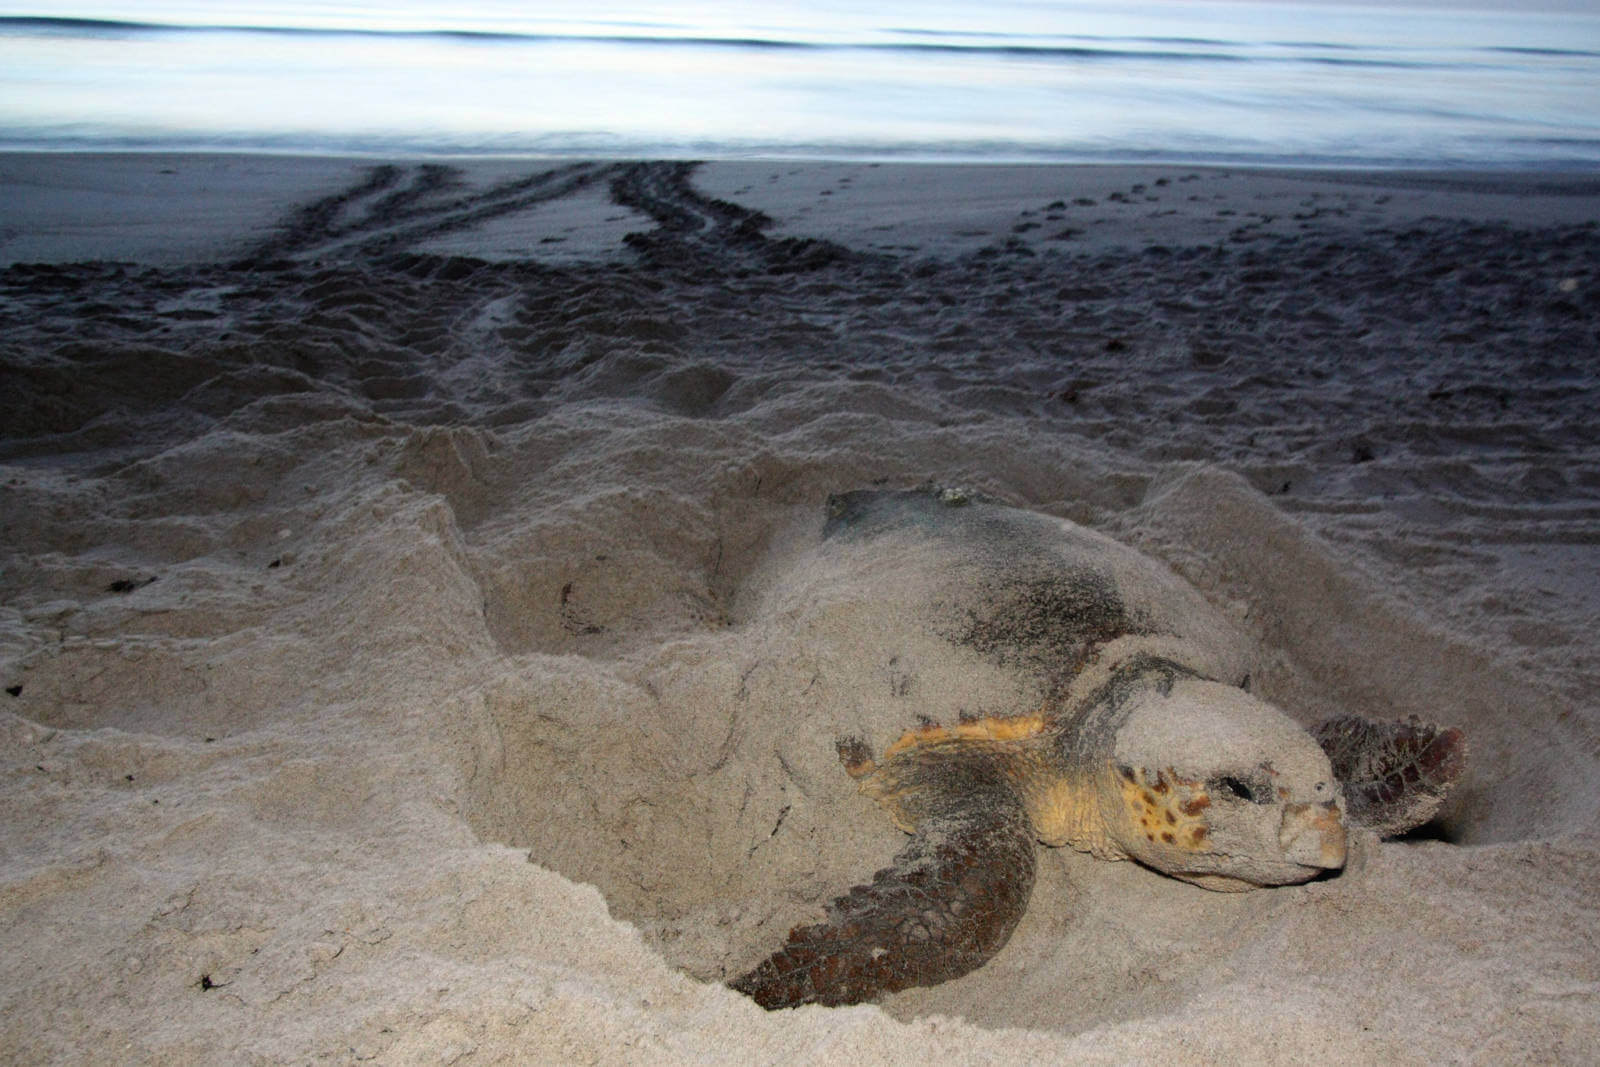 Nesting sea turtle on the beach photo credit Florida Fish & Wildlife | Must Do Visitor Guides, MustDo.com